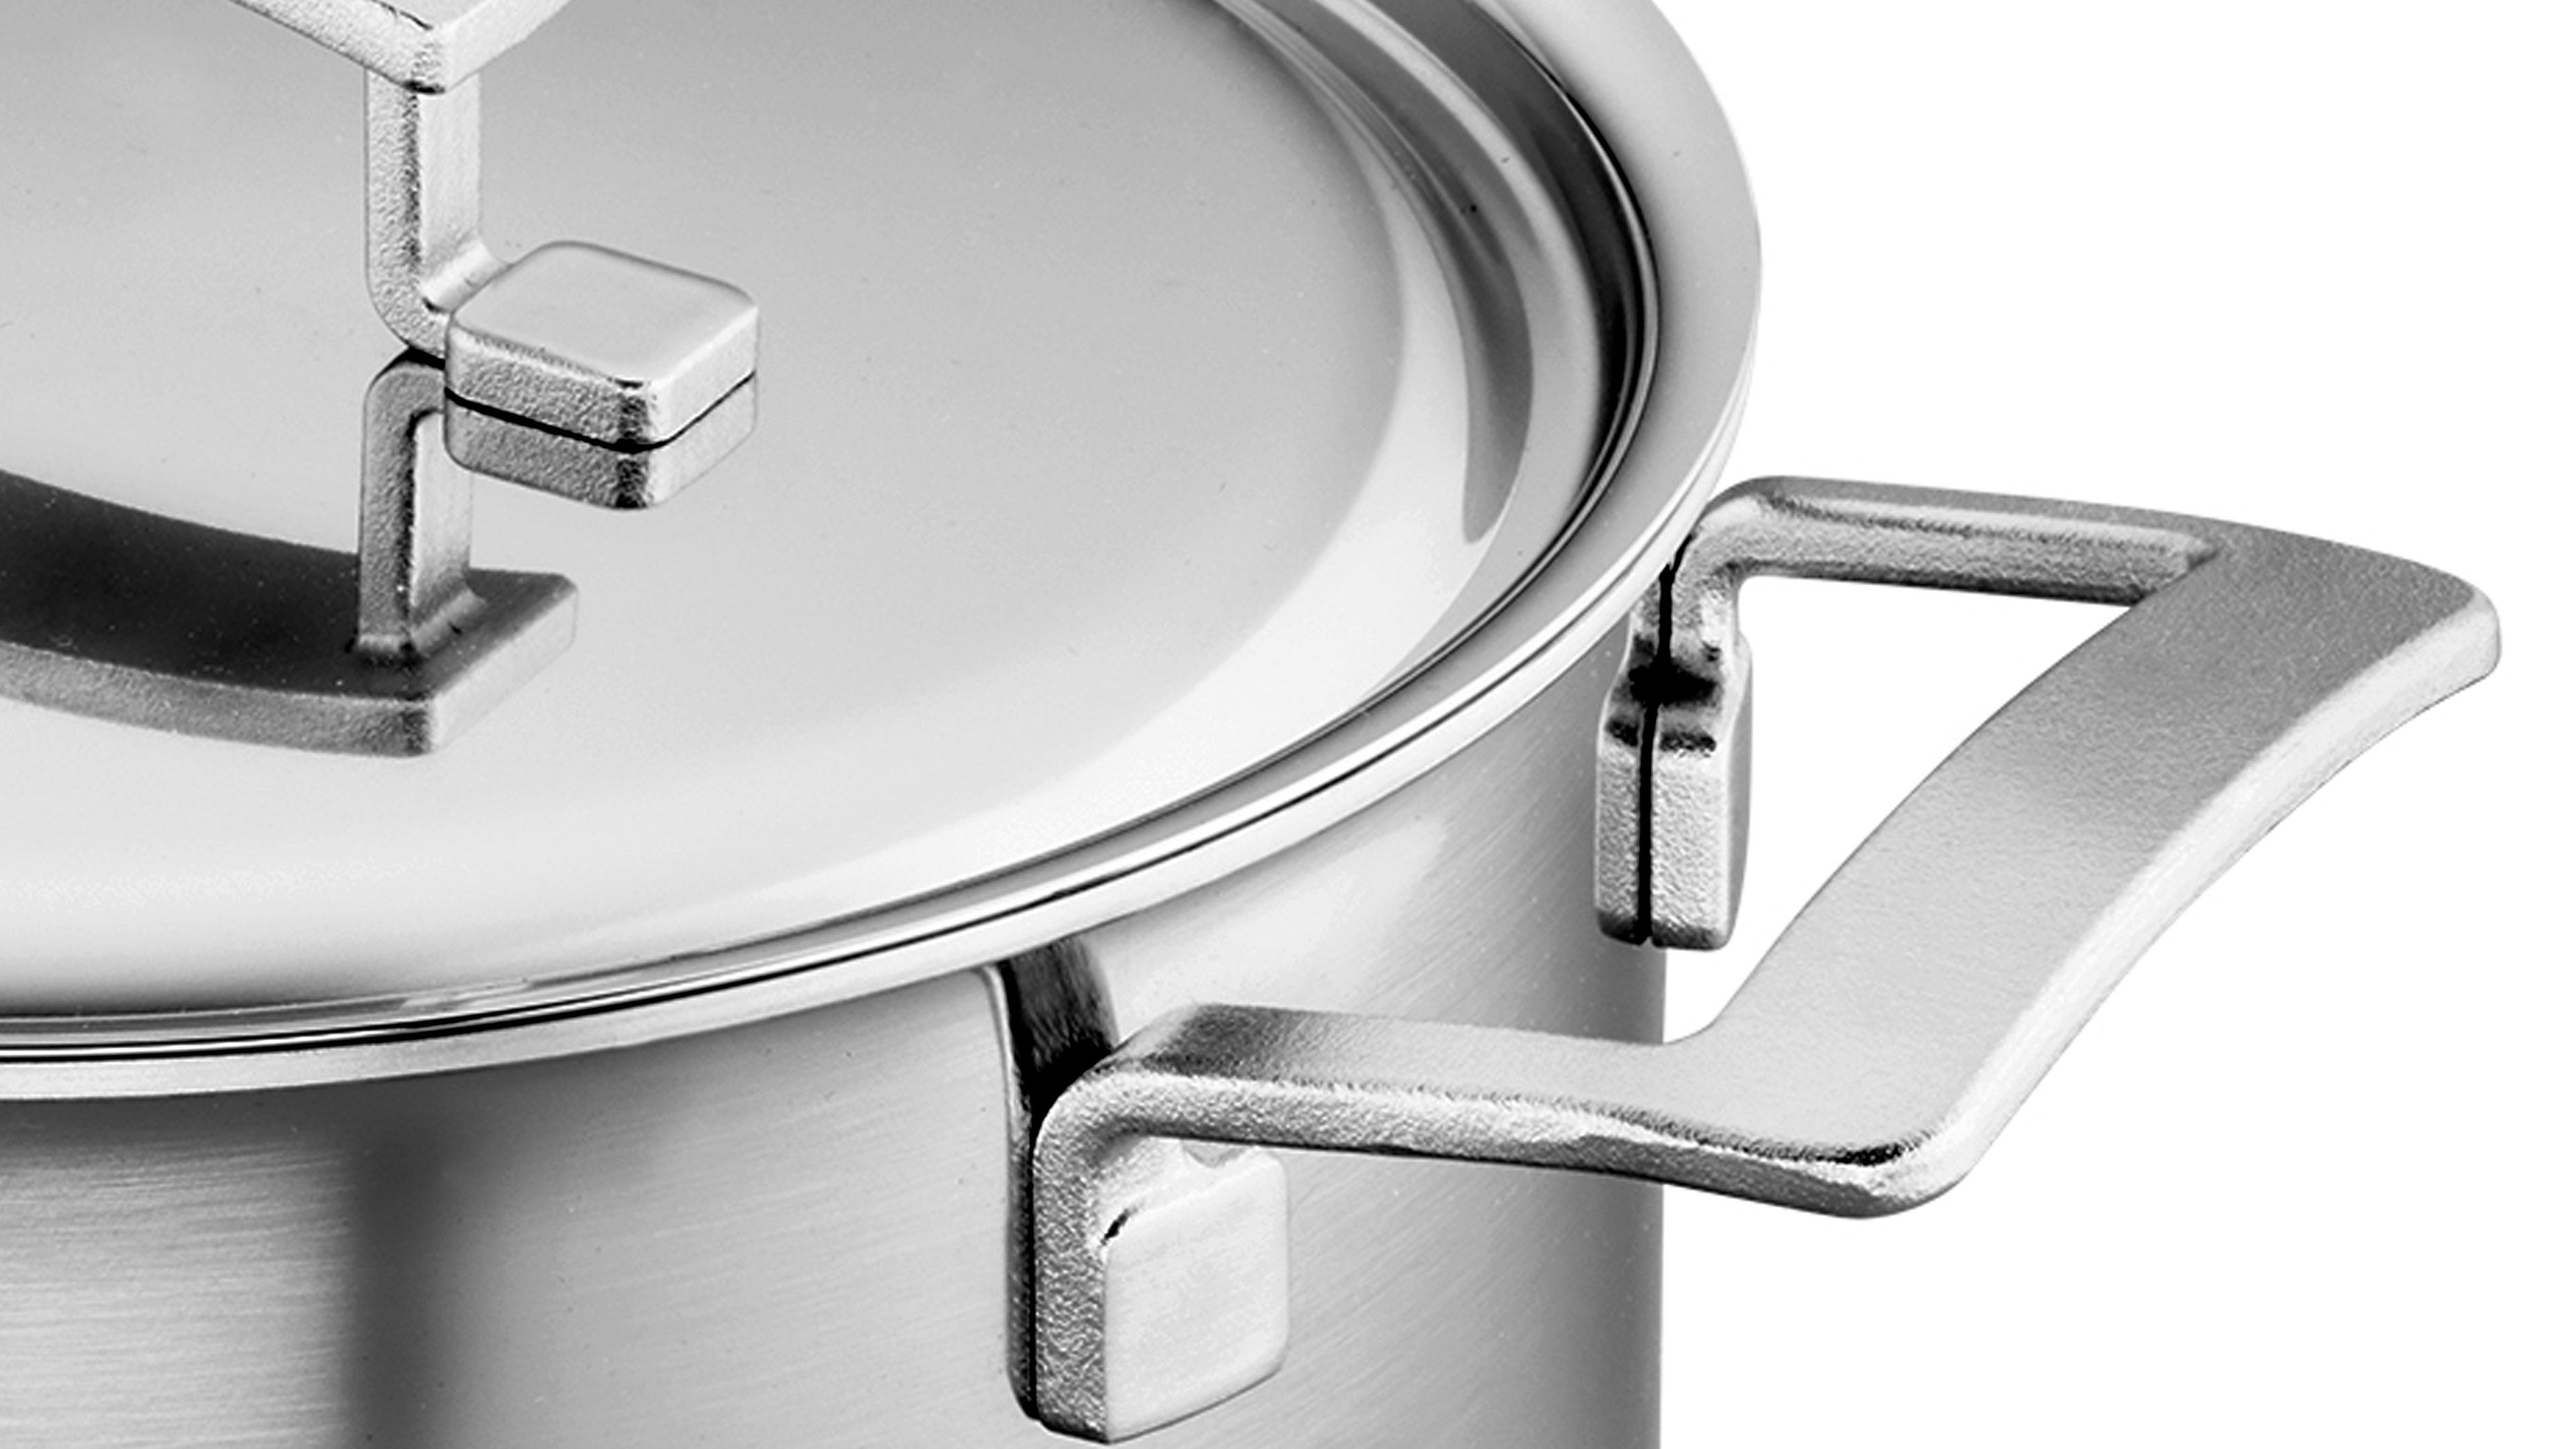 Demeyere Industry5 Stainless Steel Stock Pot 8 Quart